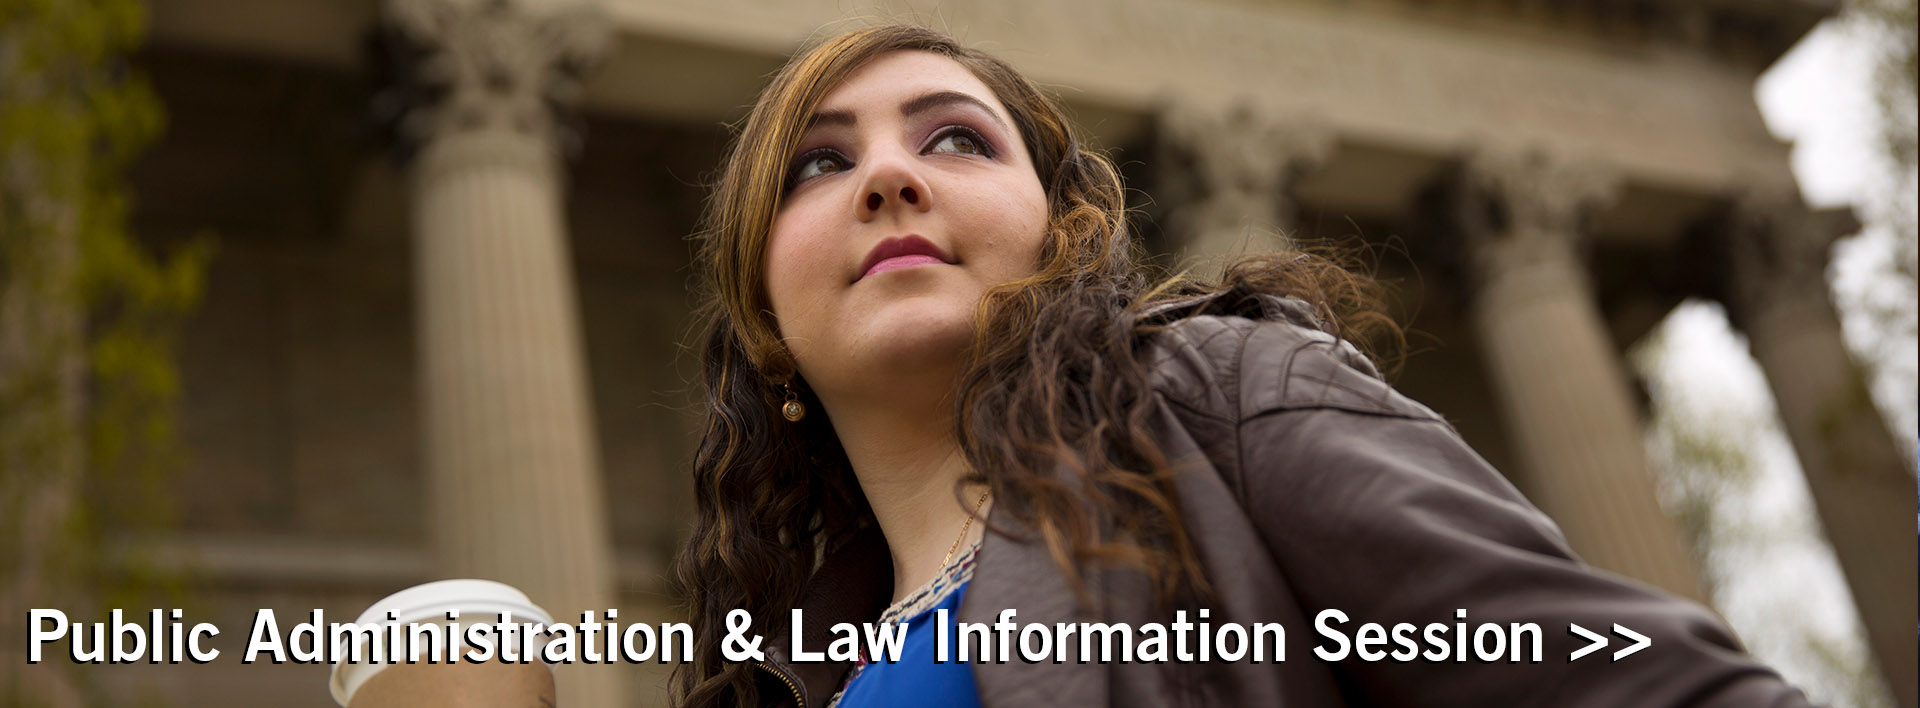 Female law student standing in front of a courthouse for Public Administration and Law Information Session banner